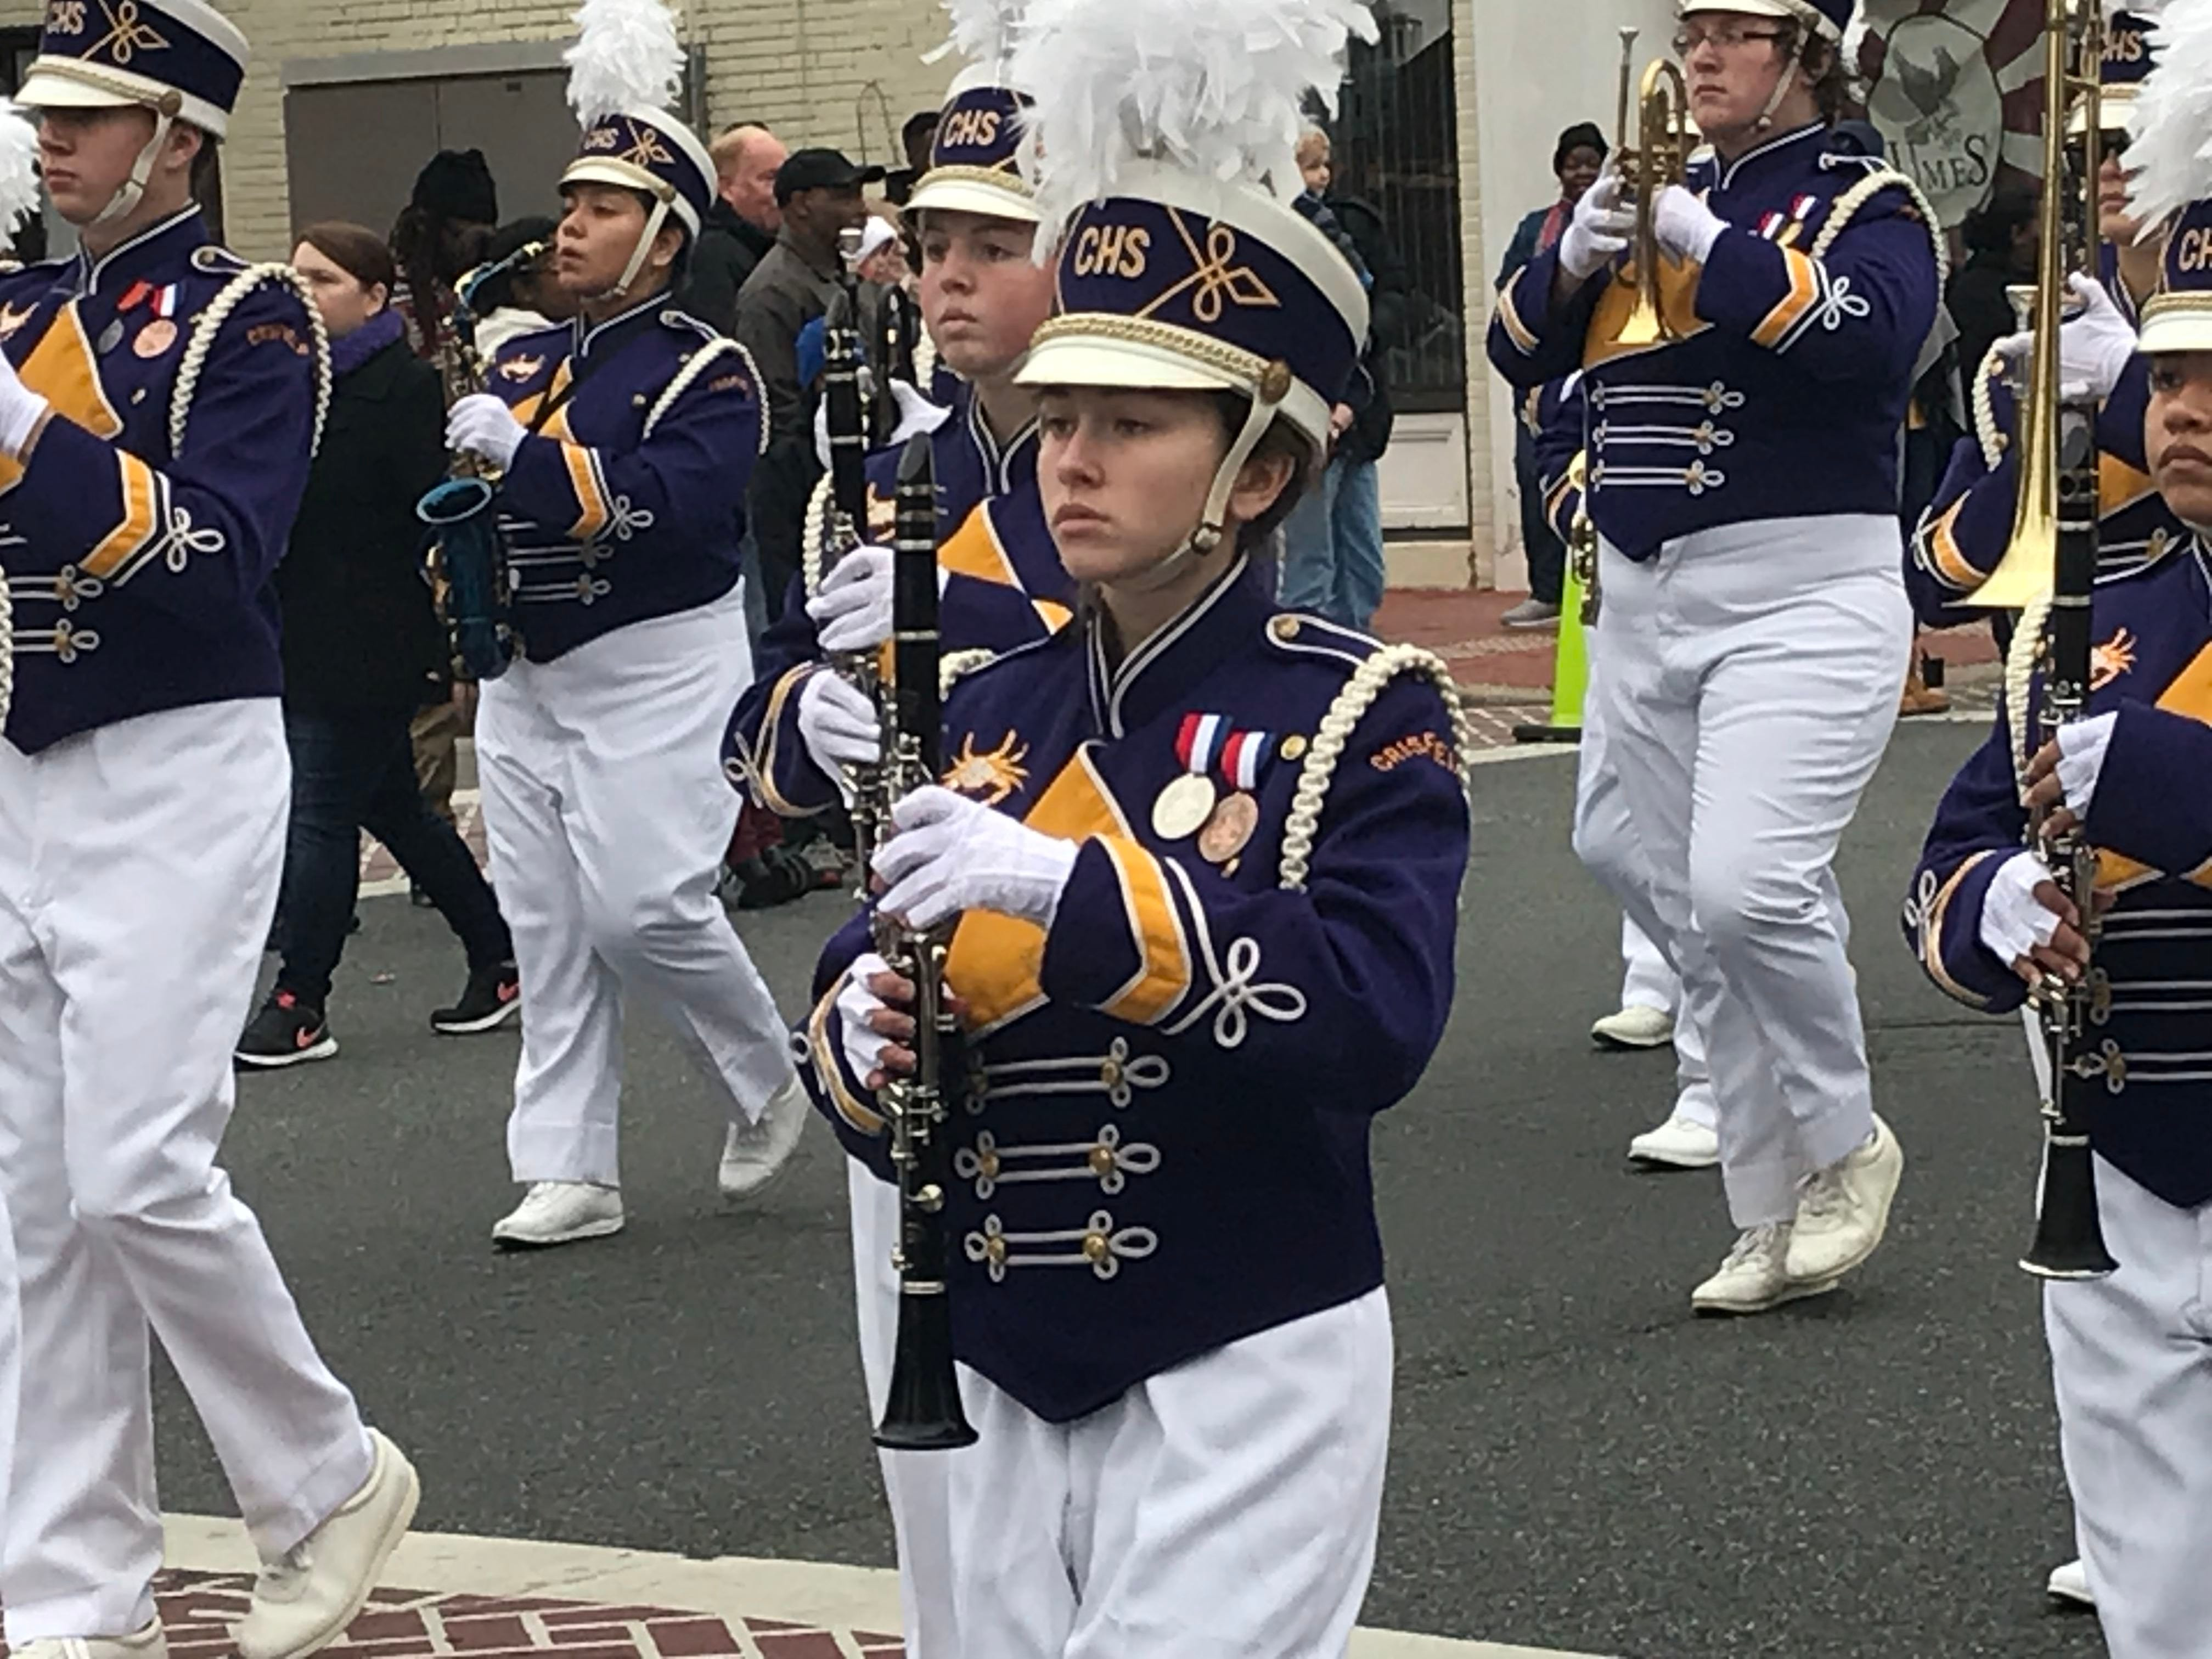 Members of the Crisfield High School Marching Band march.